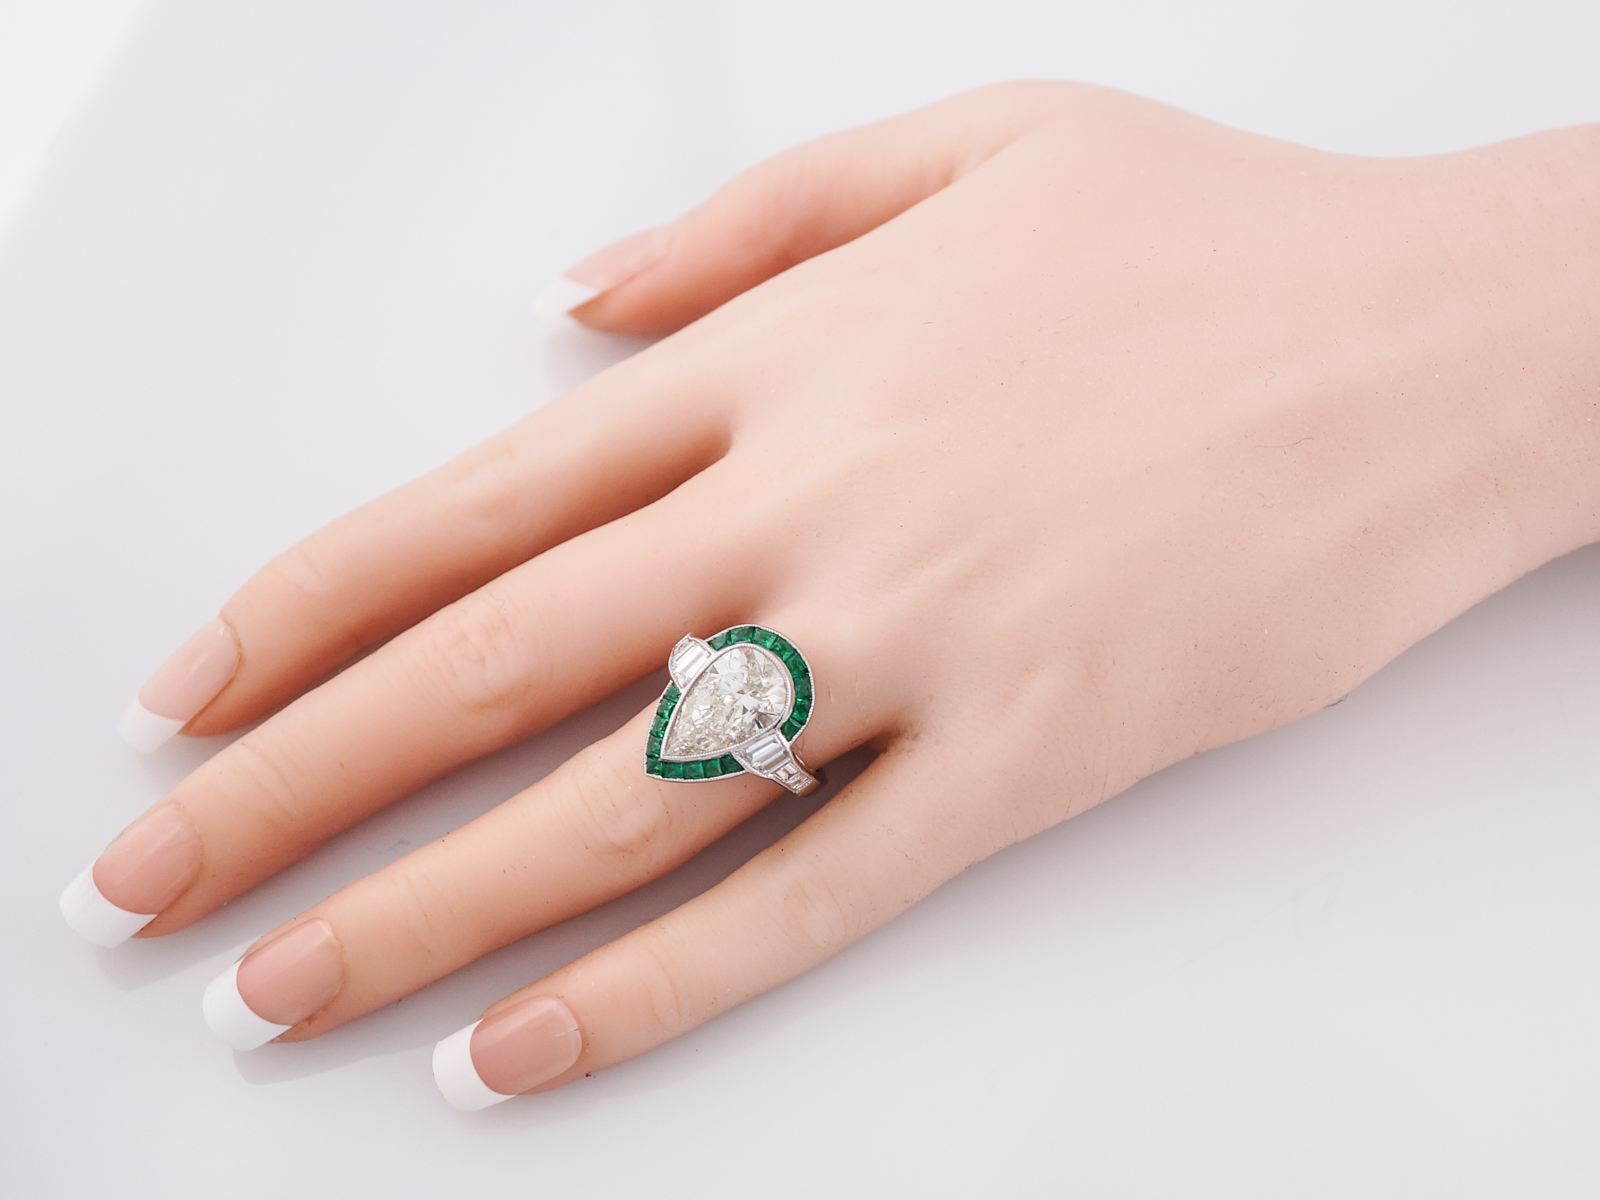 Fresh Pear Shaped Diamond Engagement Ring On Hand - Best Jewelry